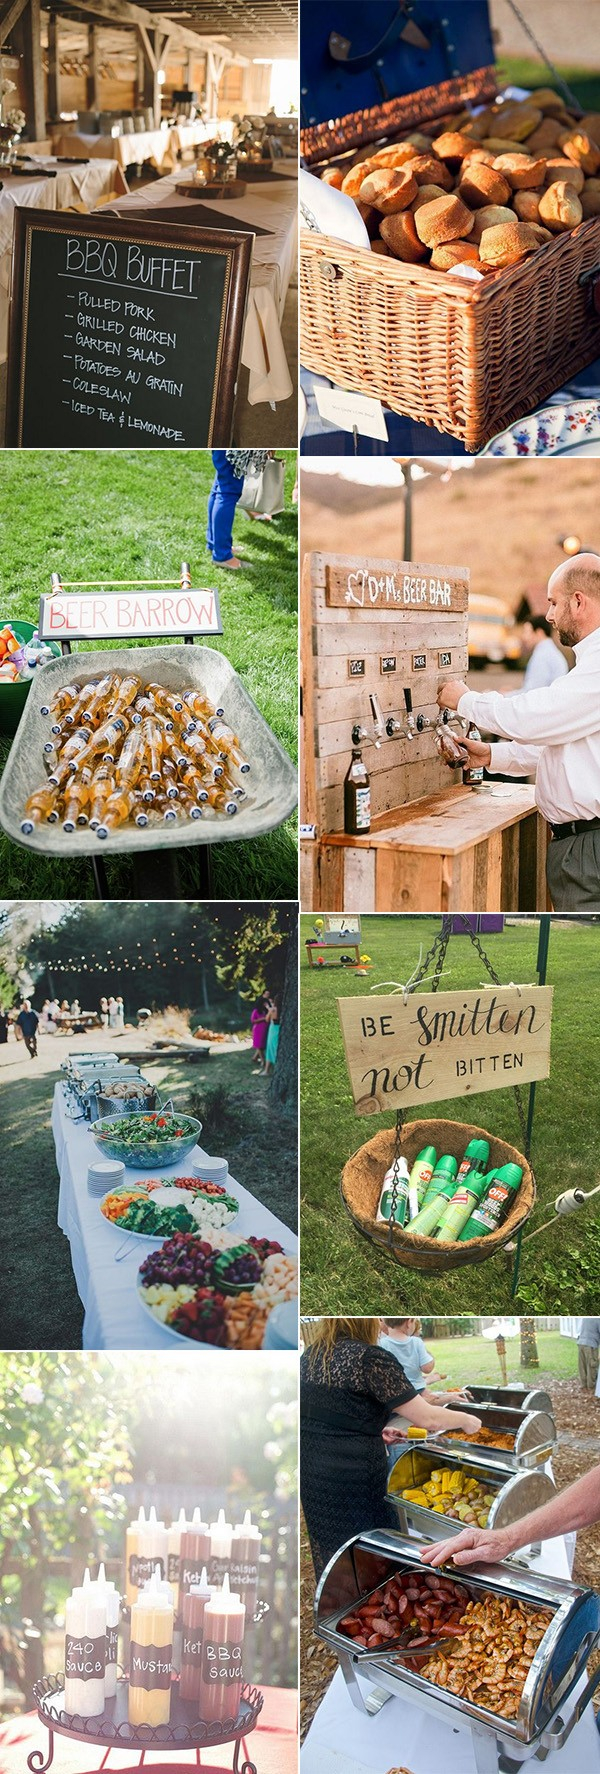 Top 15 Bbq Reception Ideas For Backyard Weddings Page 2 Of 2 pertaining to 10 Awesome Designs of How to Upgrade Backyard Bbq Reception Ideas